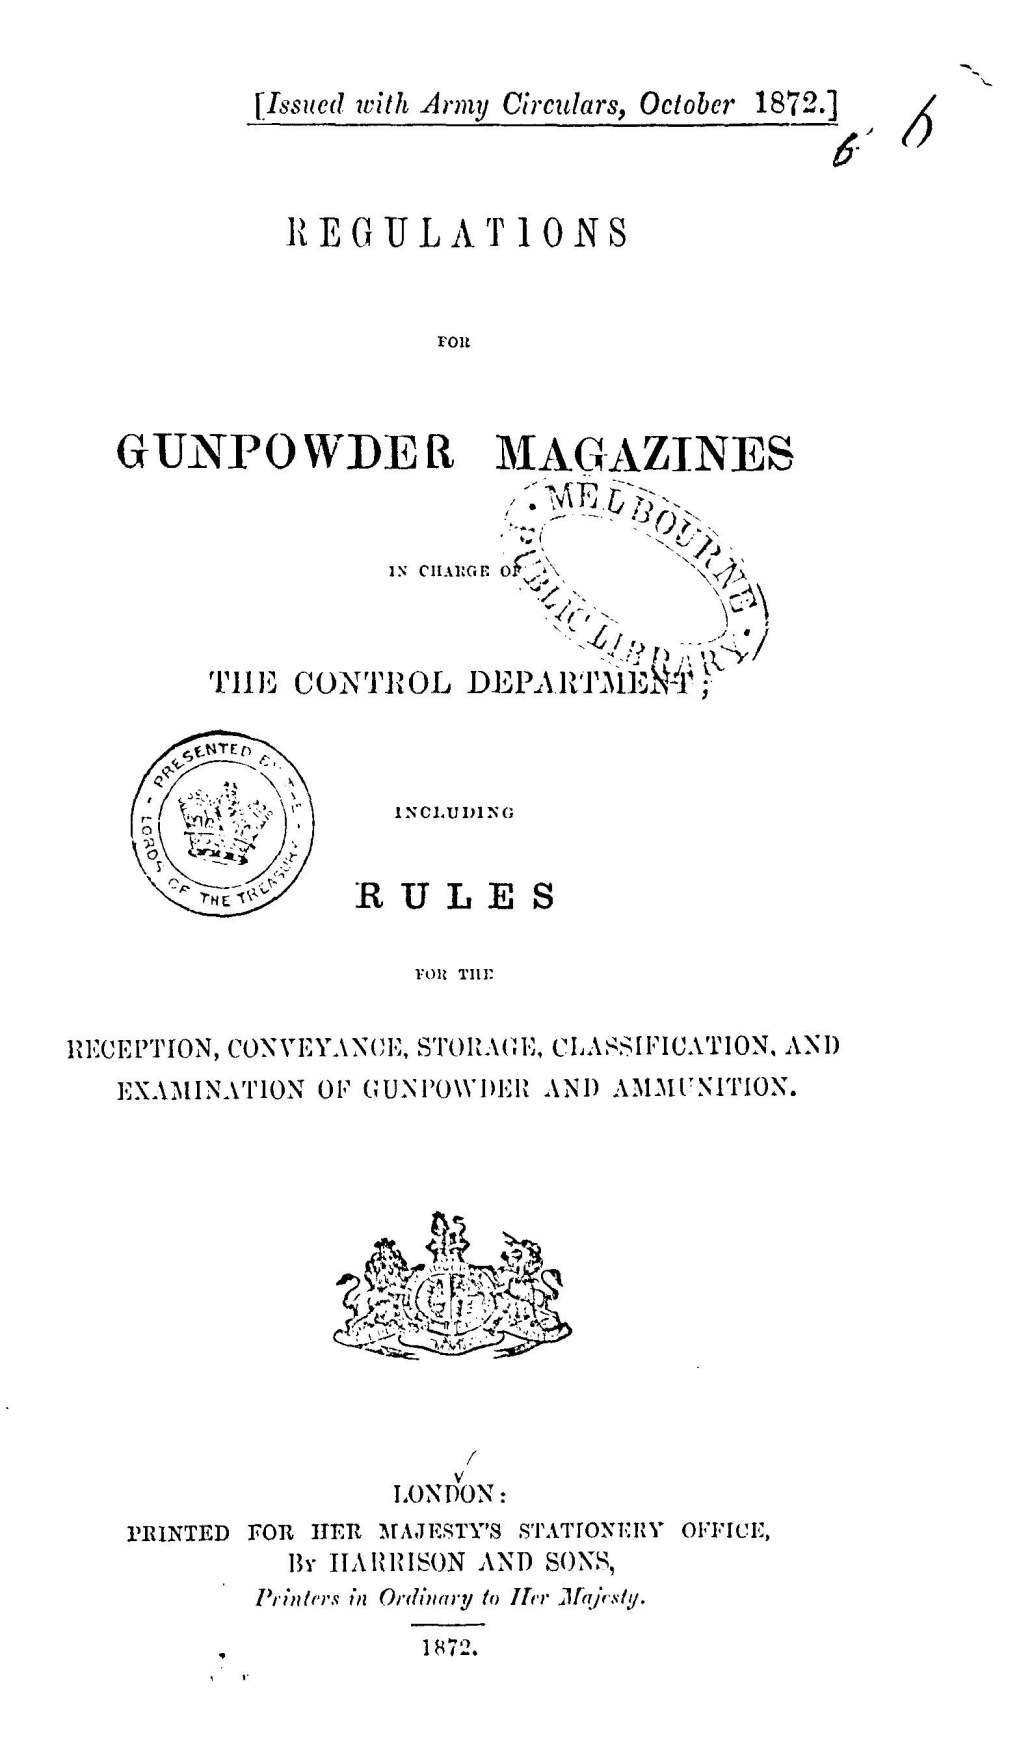 gunpowder regs_Page_01